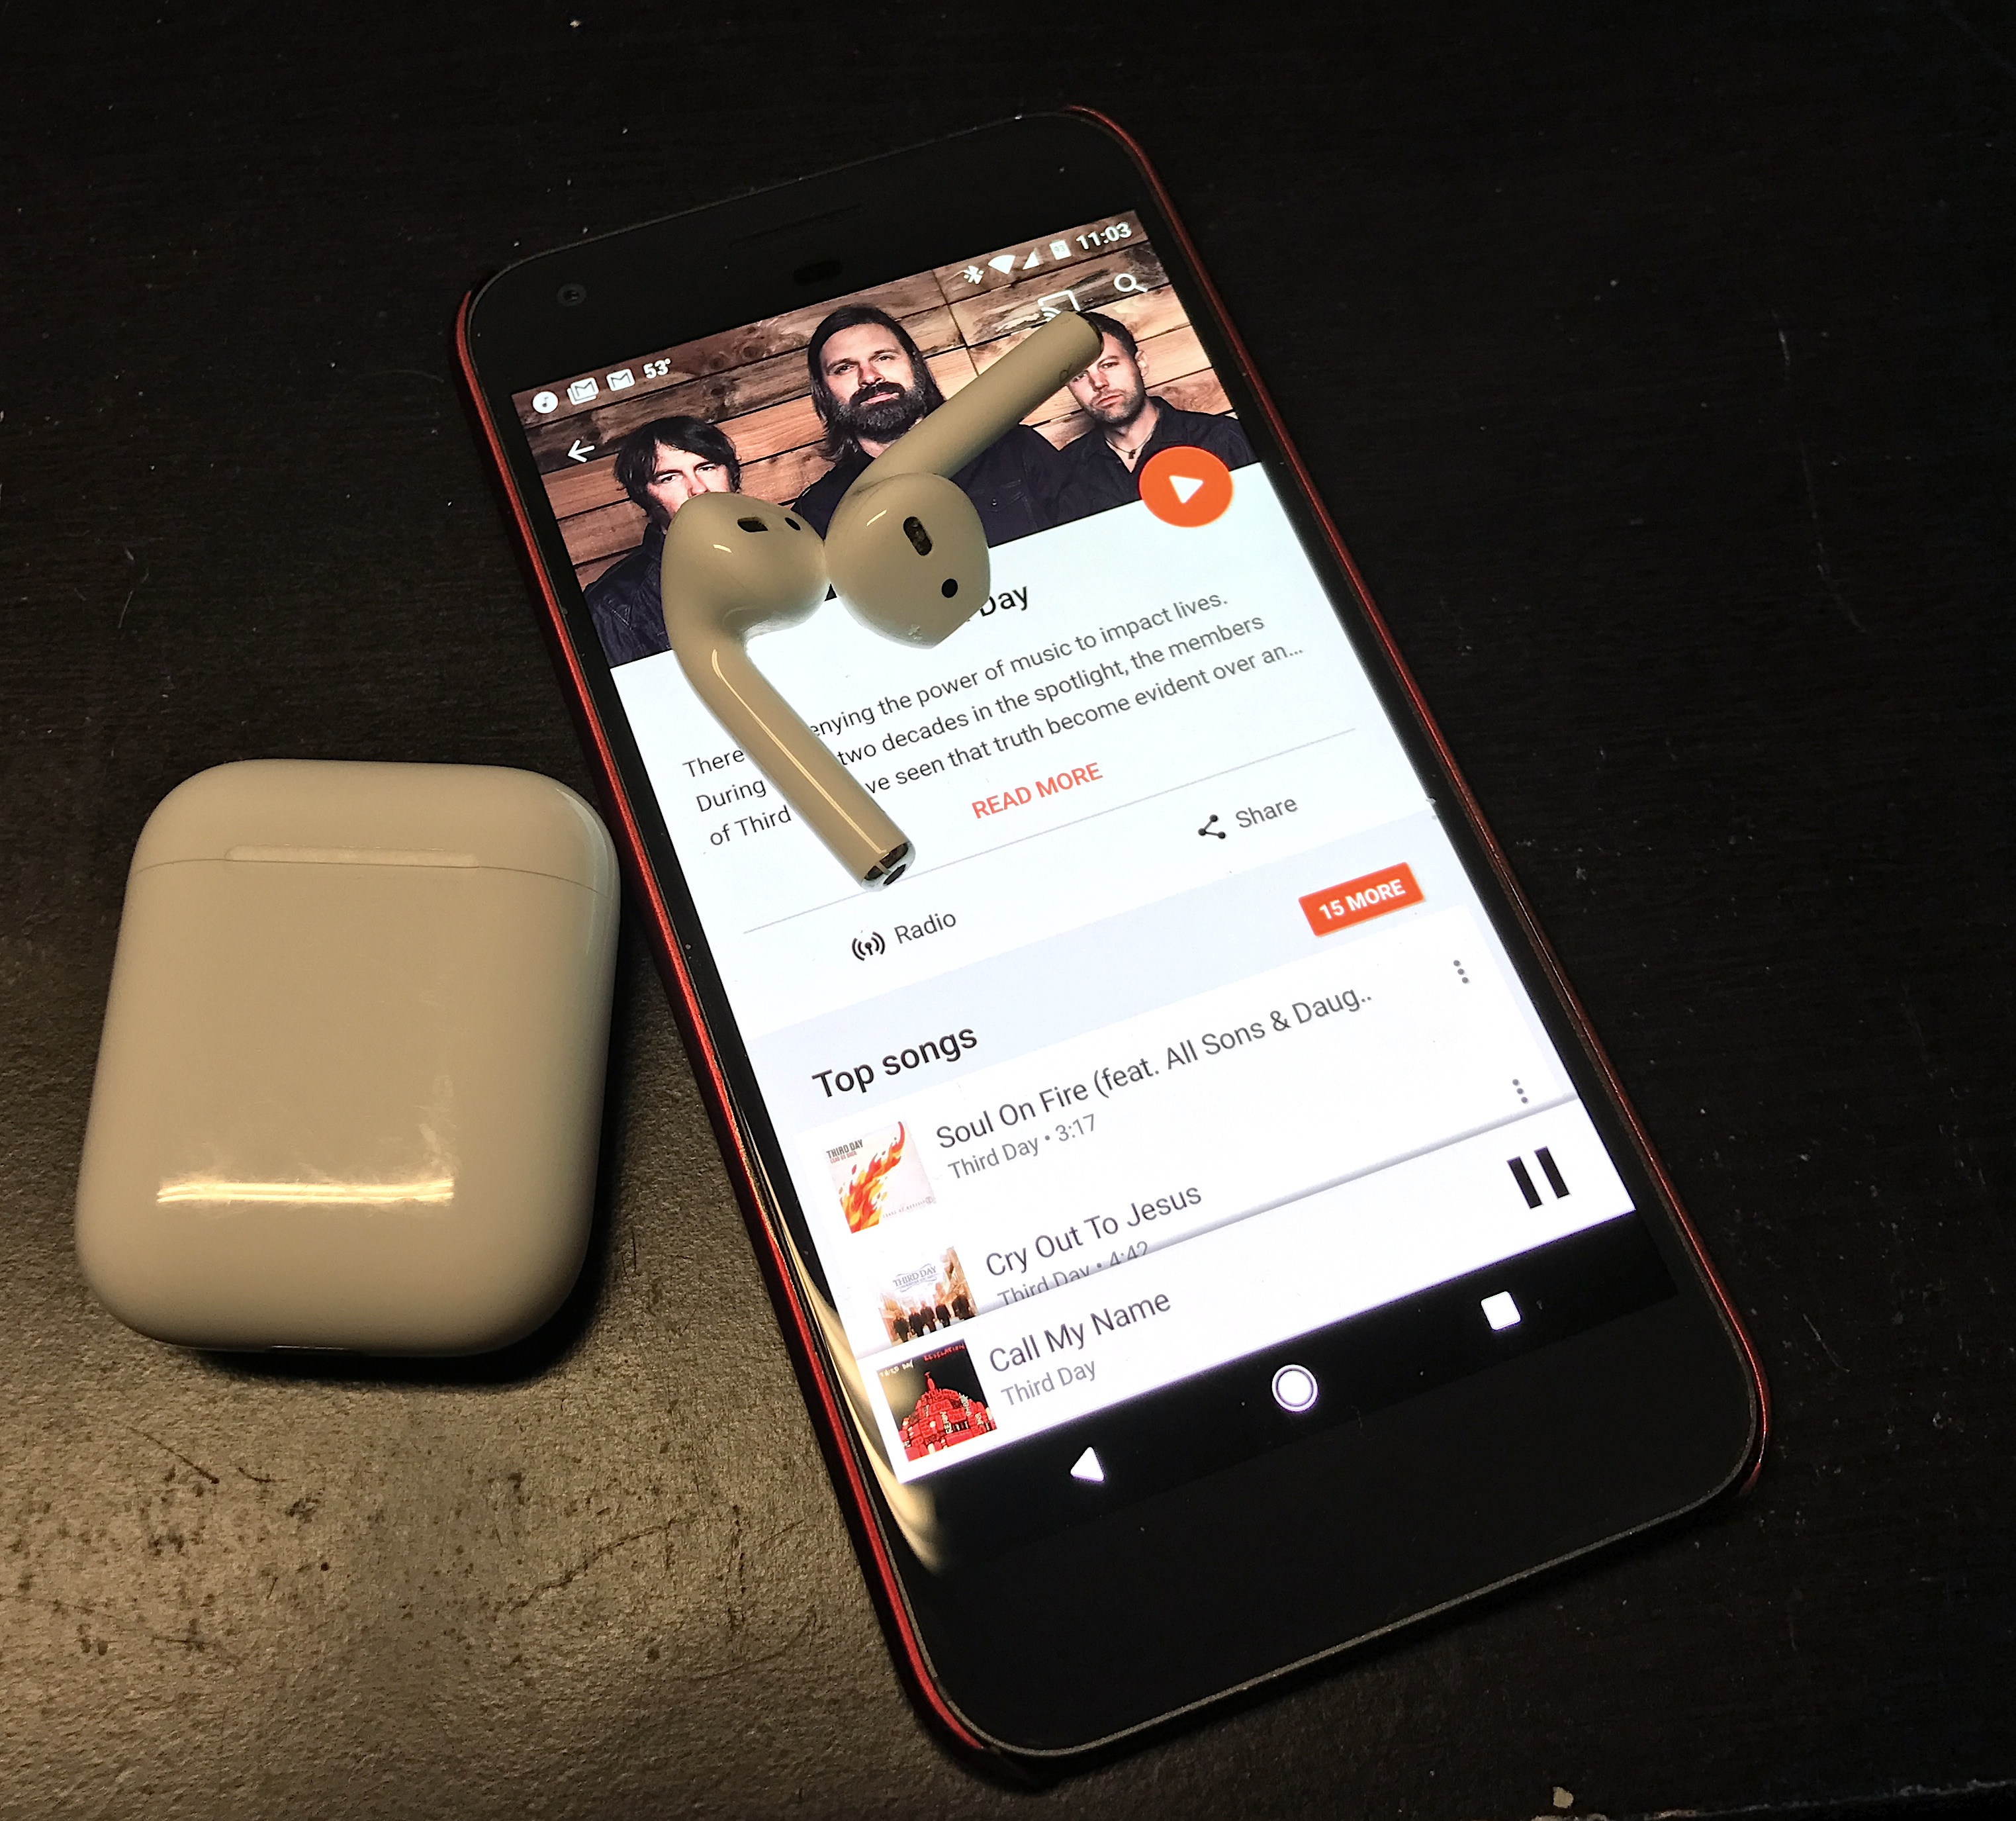 How To Pair Apple Airpods To Android Devices